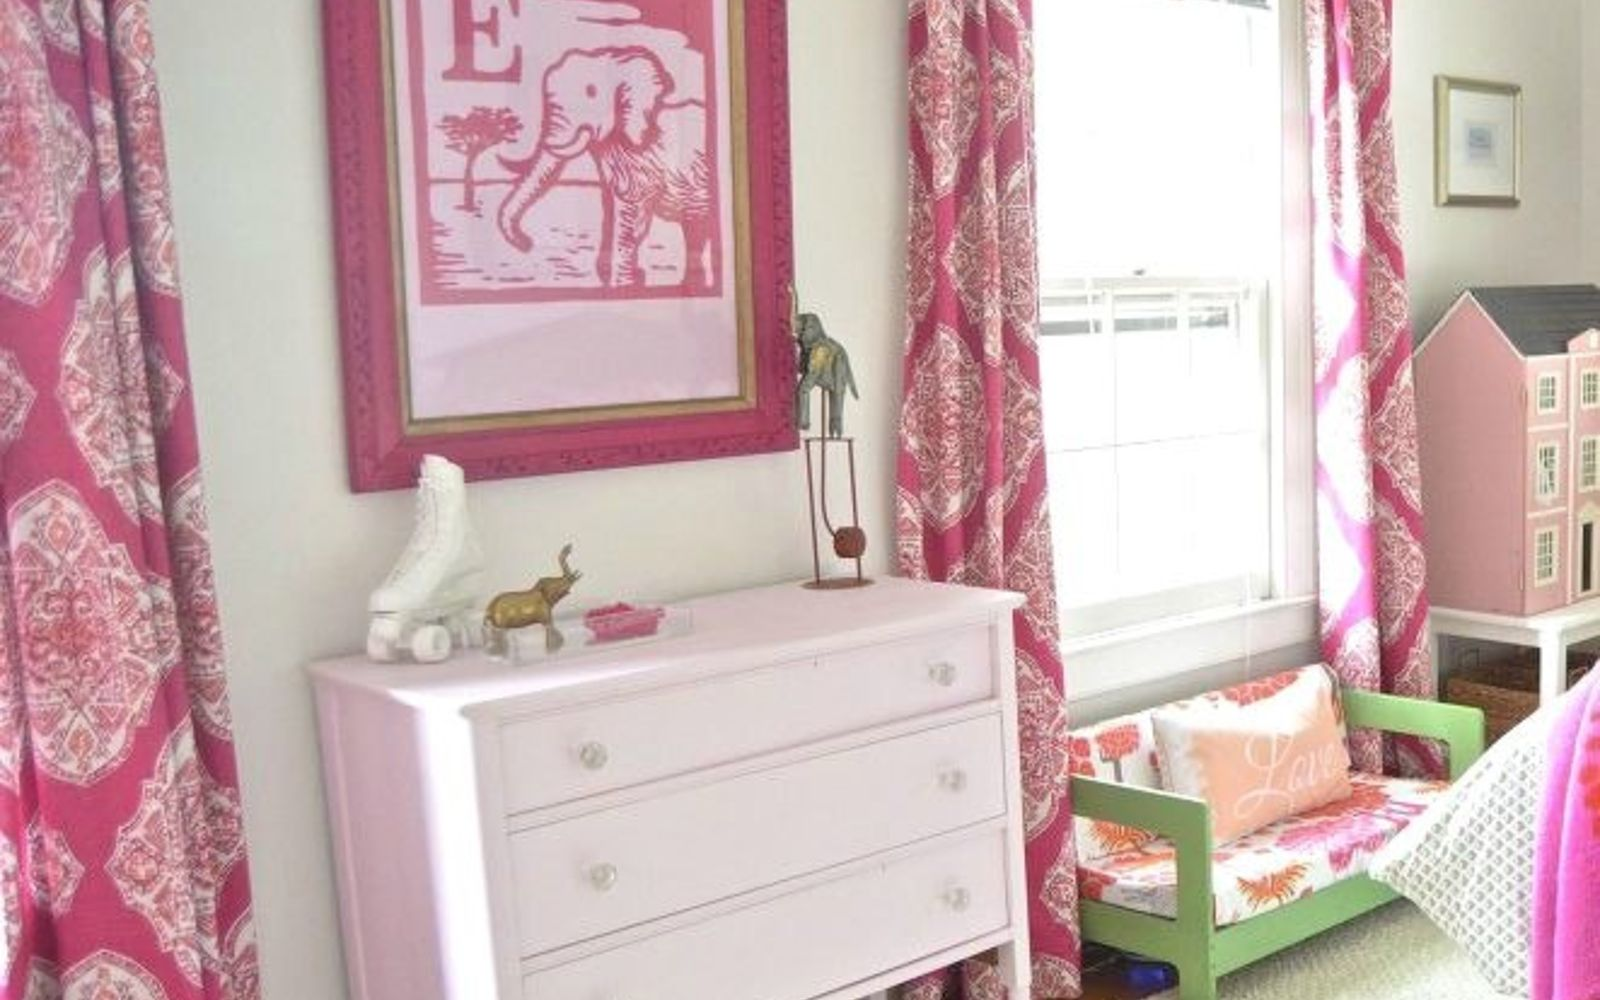 s 10 awesome paint colors to try in 2016, bedroom ideas, home decor, paint colors, Satin Magenta Rustoleum